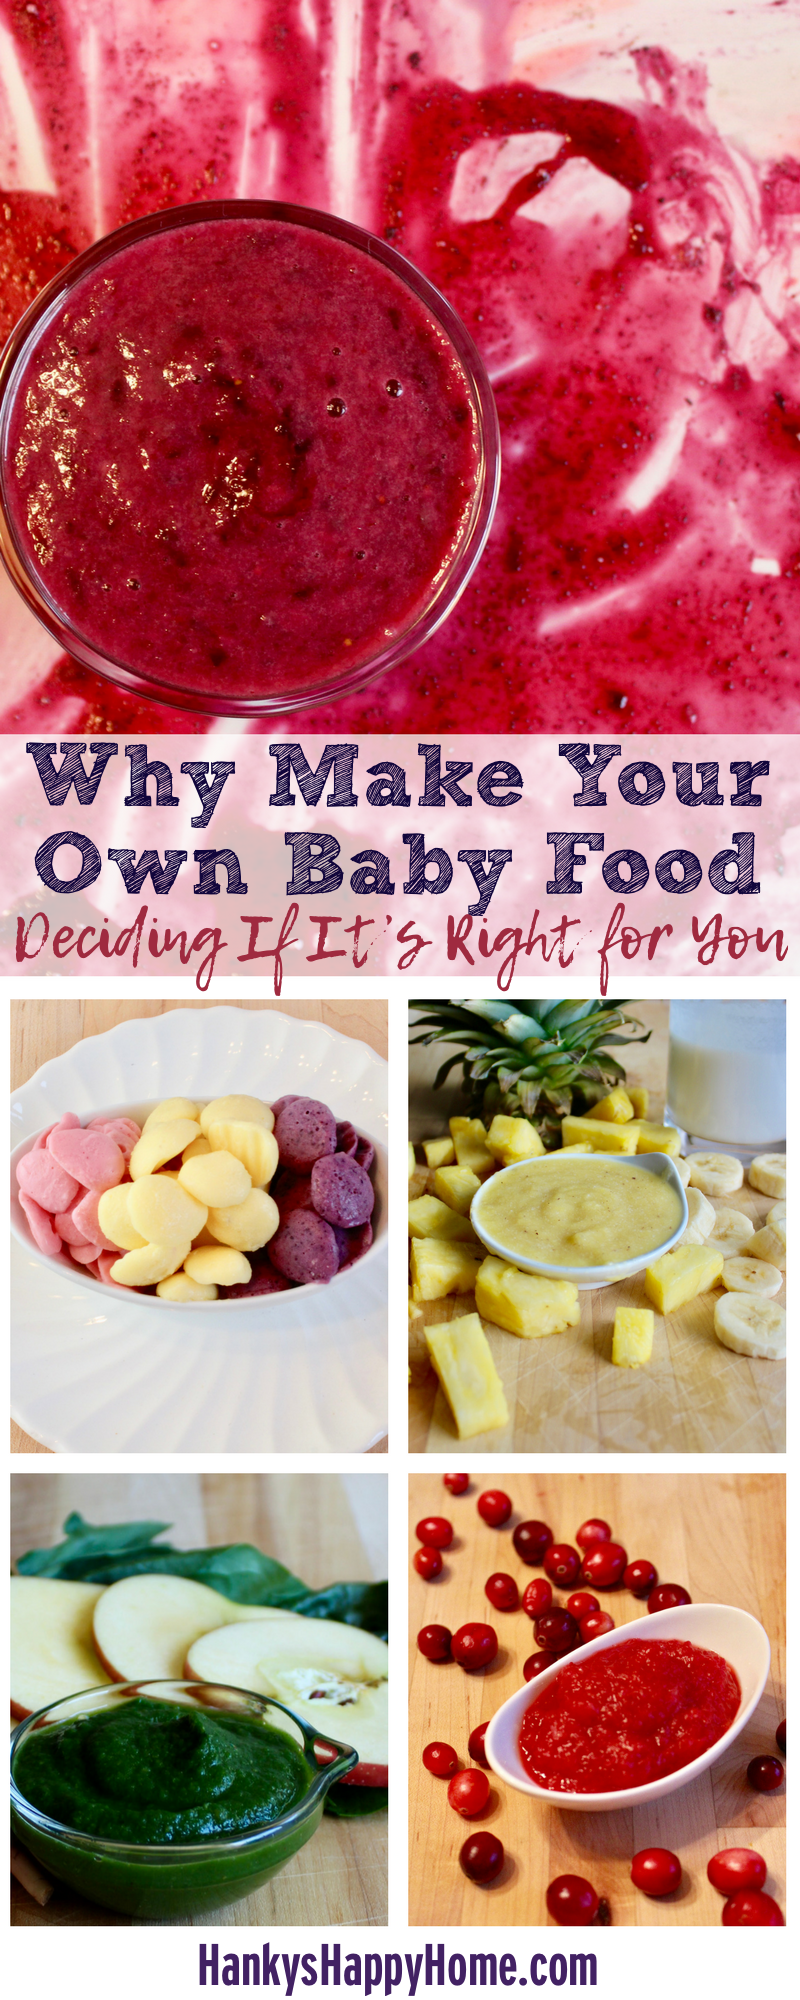 Why Make Your Own Baby Food Hankys Happy Home